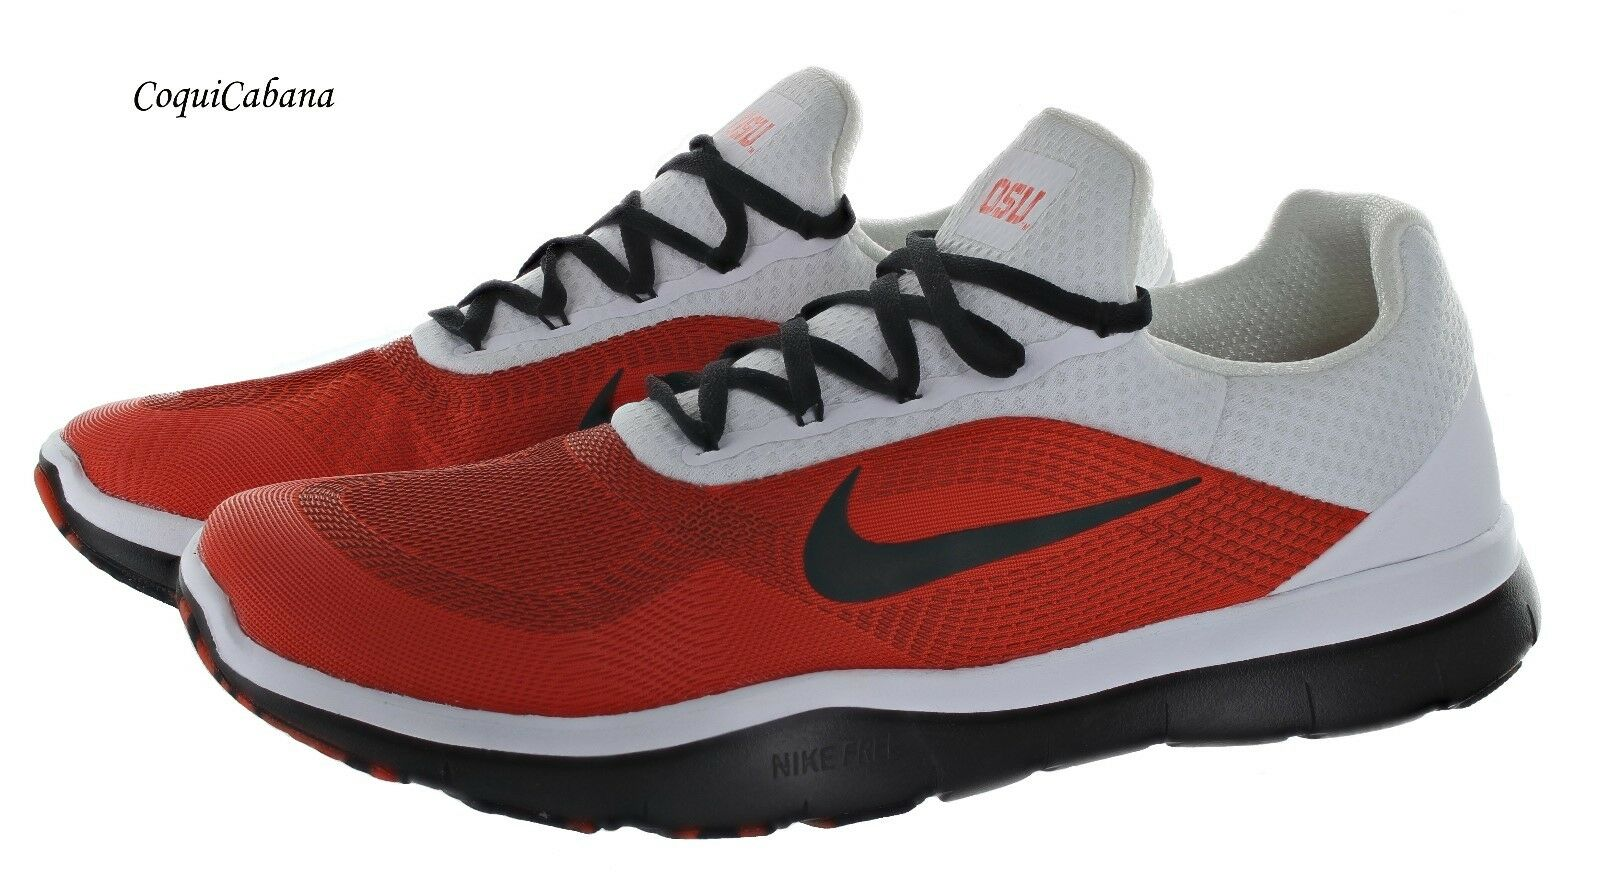 Nike Men's  Free Trainer V7 Week Zero  White orange Training shoes Size 11.5 New